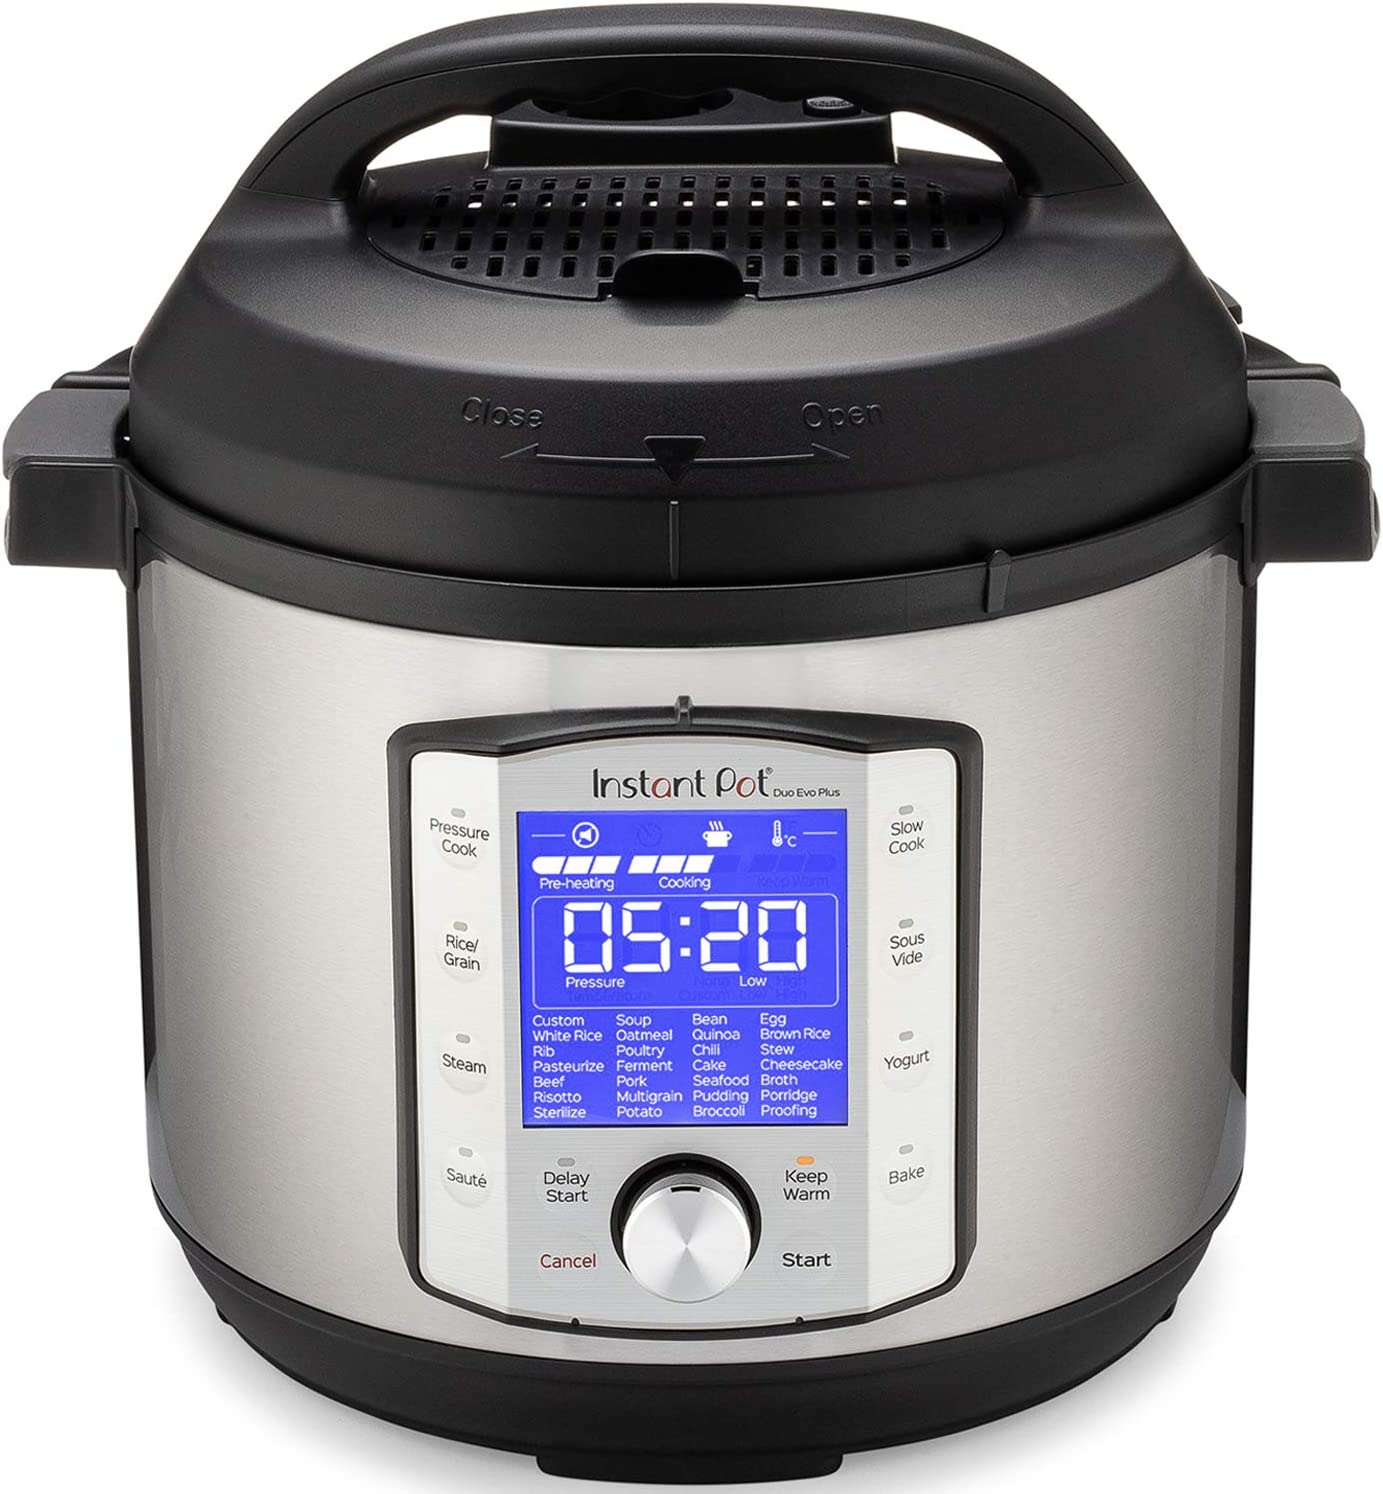 Instant Pot 6 Qt Duo Evo Plus 9-in-1, 1200 Watts Pressure Cooker